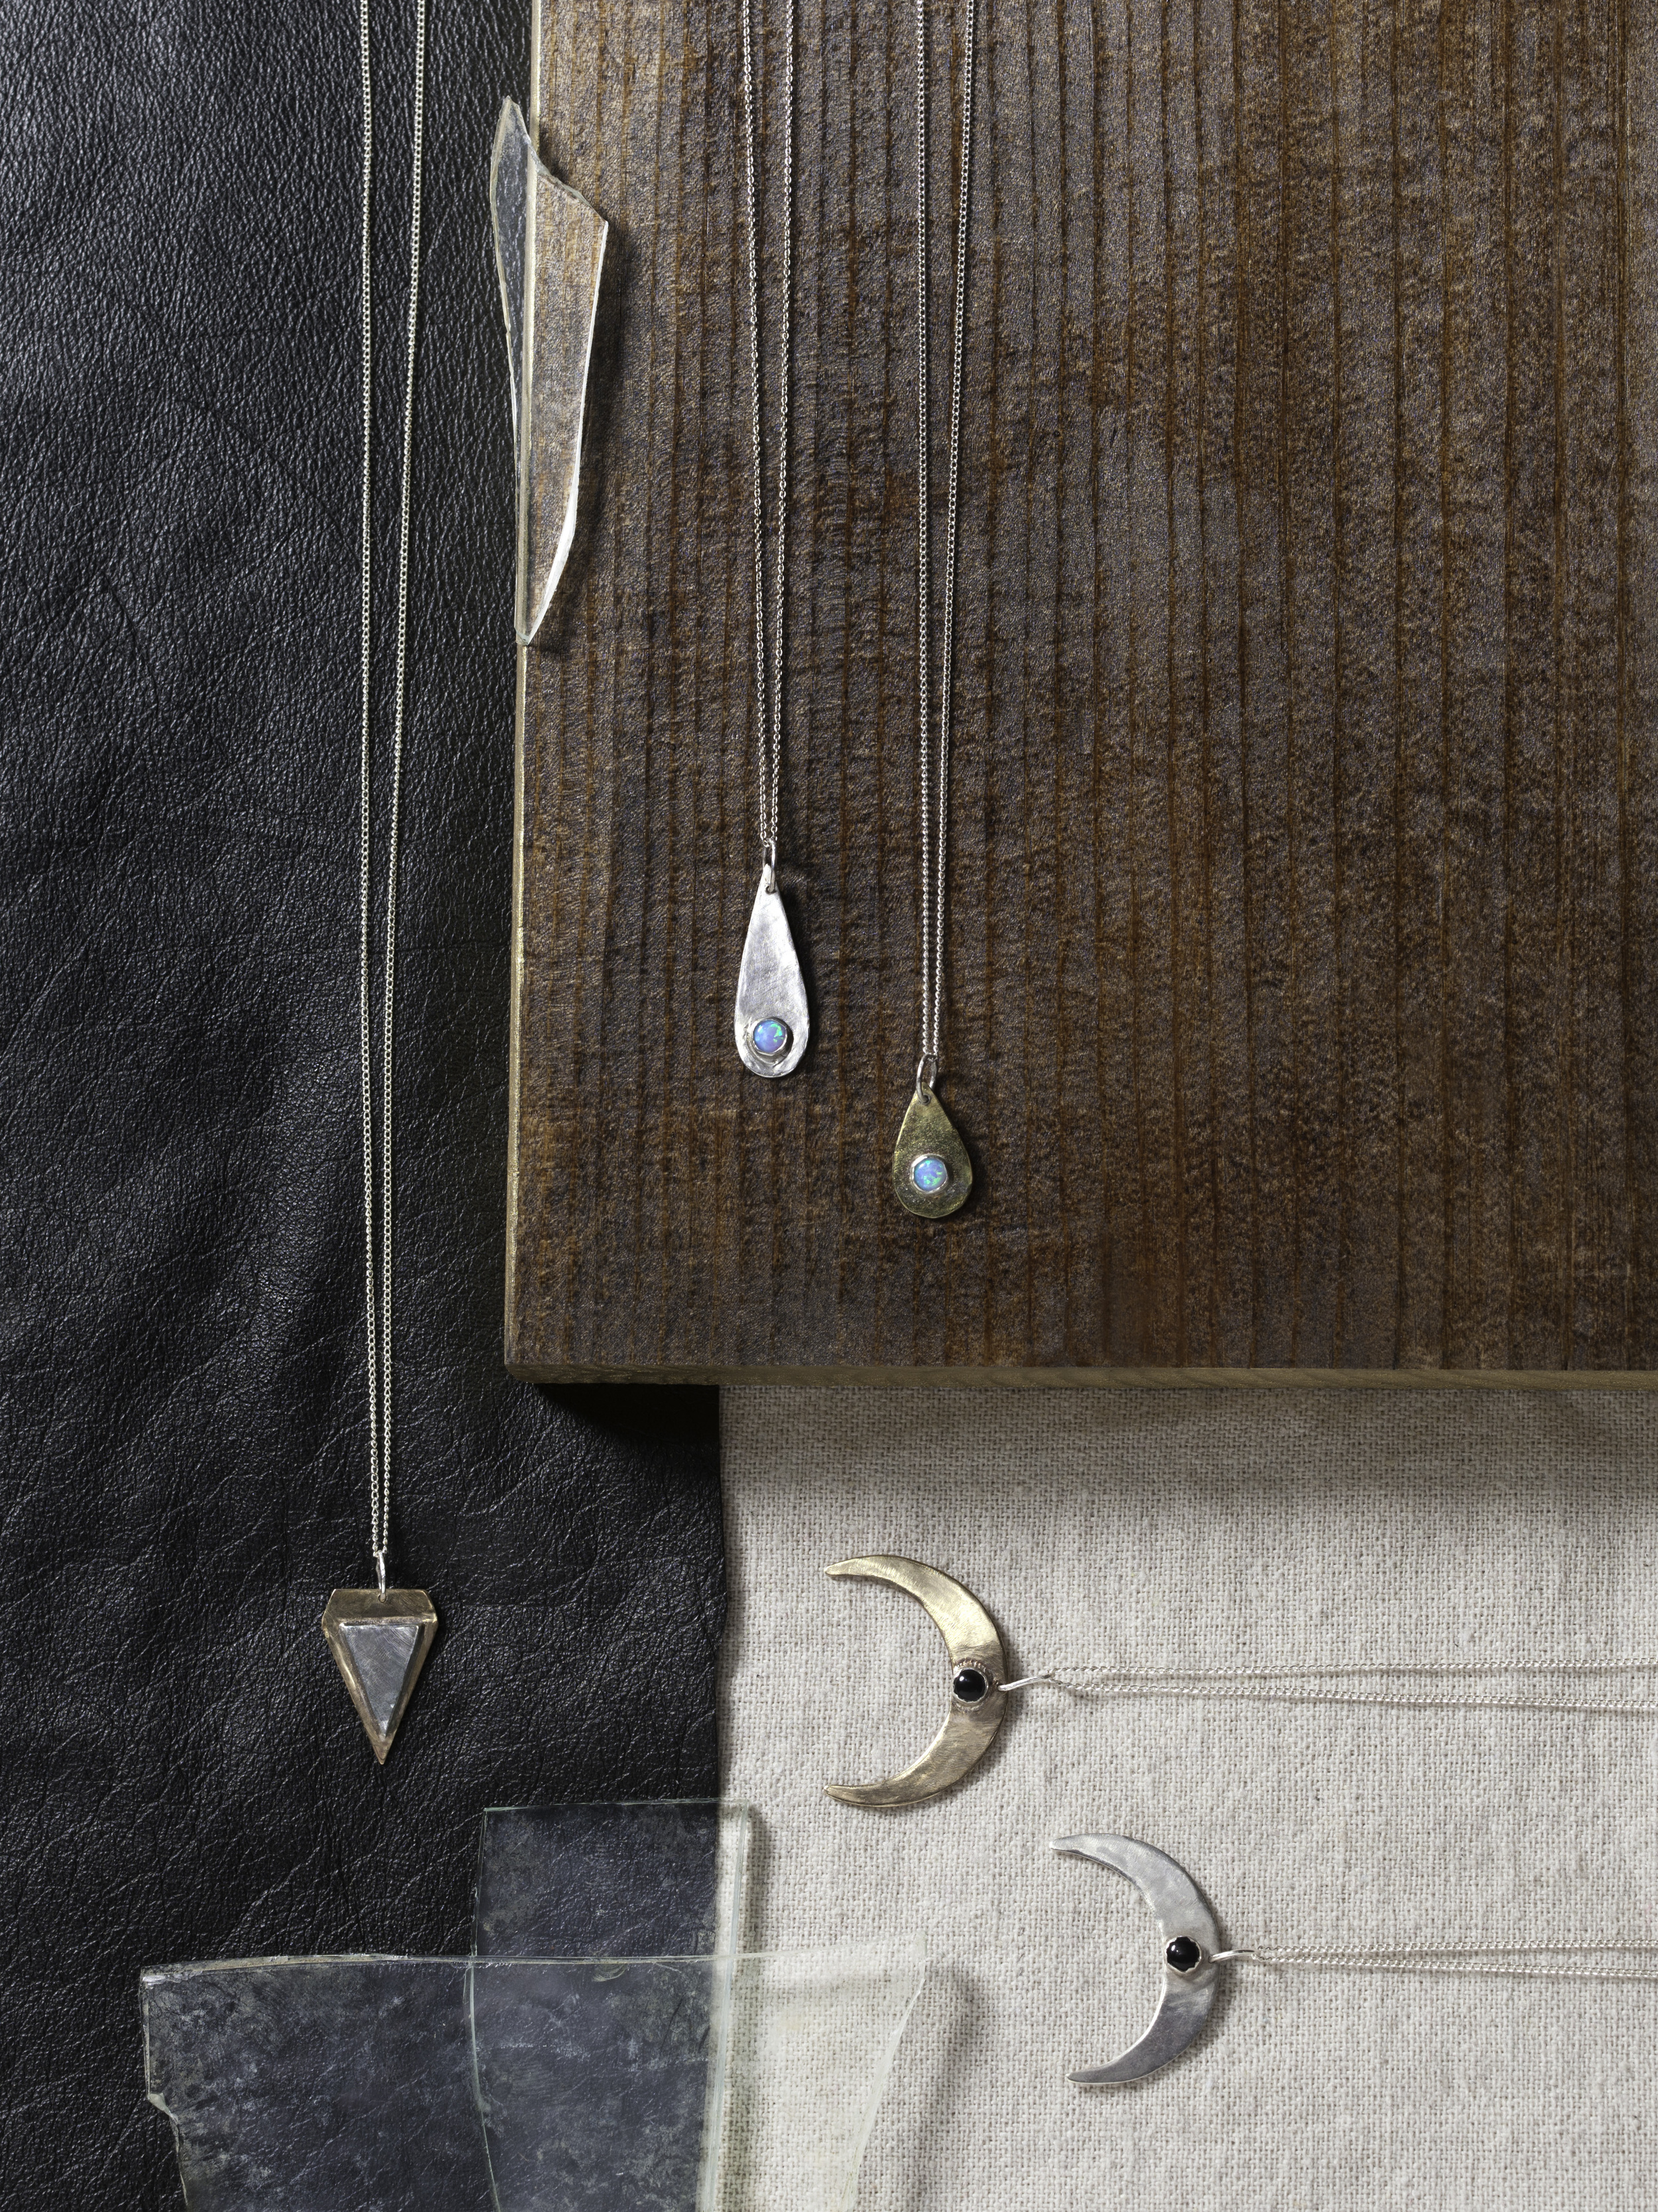 Teardrop, Triangle, and Crescent Necklaces